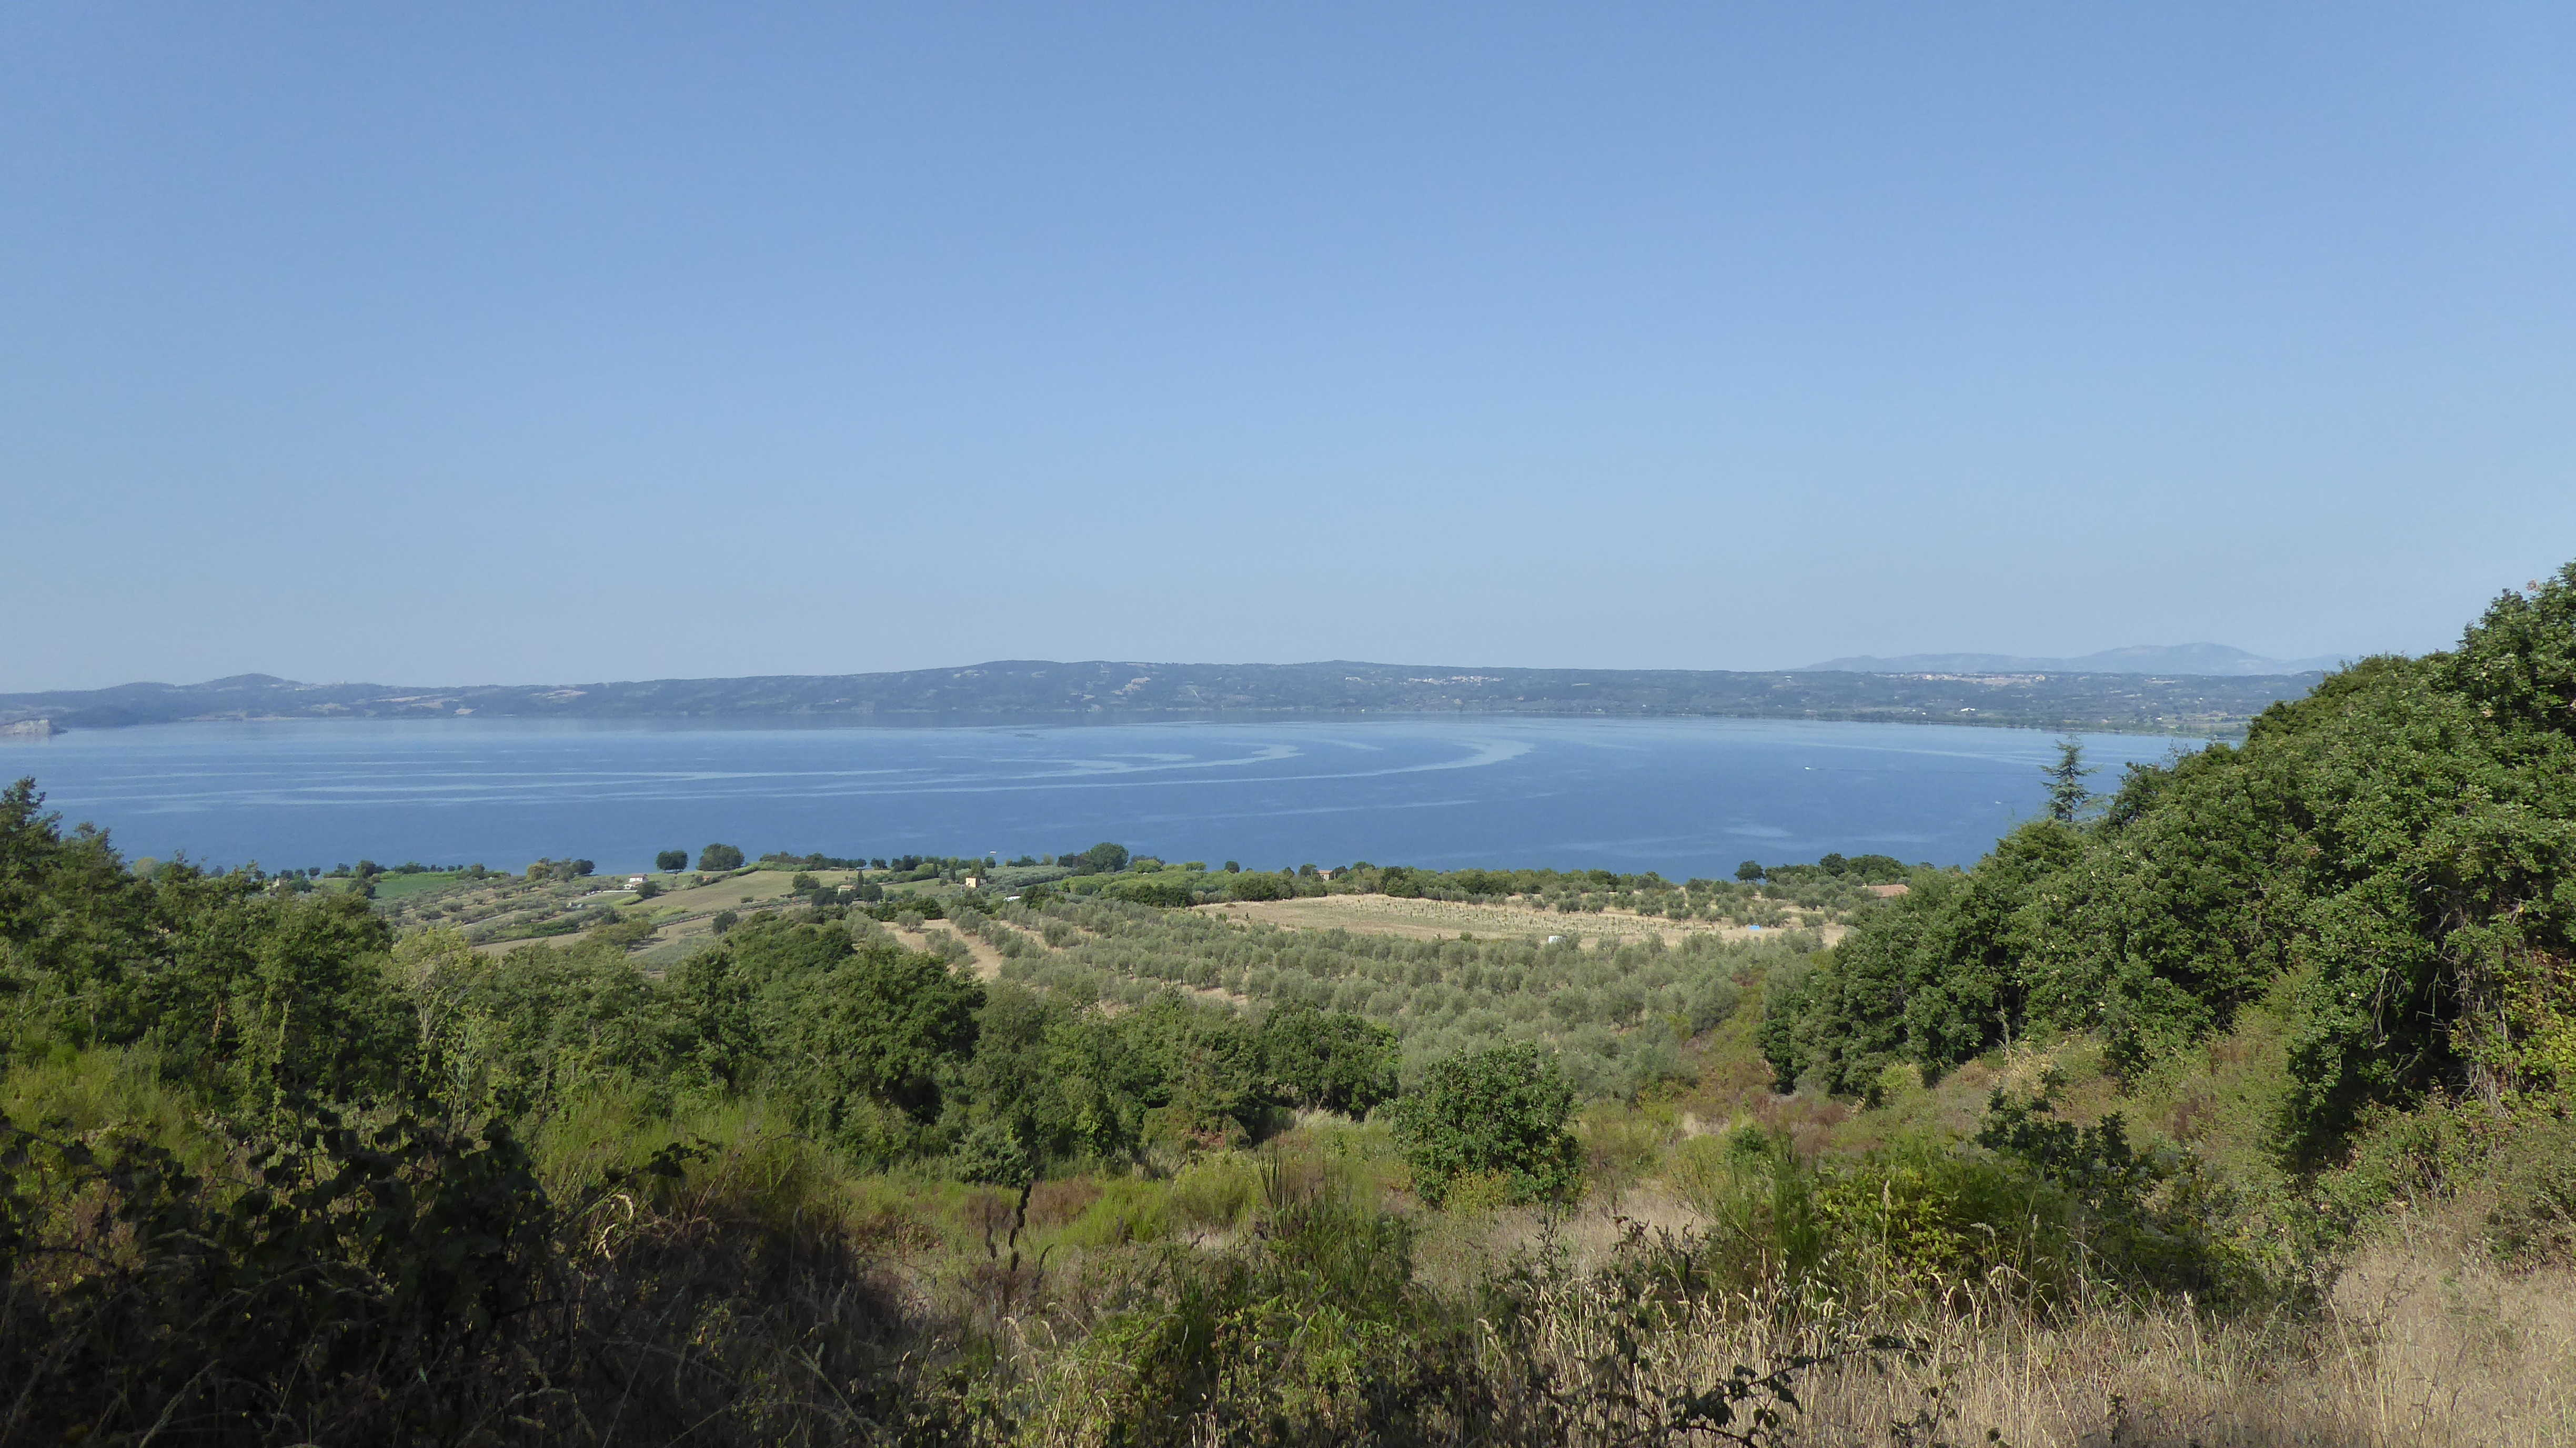 Vineyards and Lake Bolsena, Francigena Way